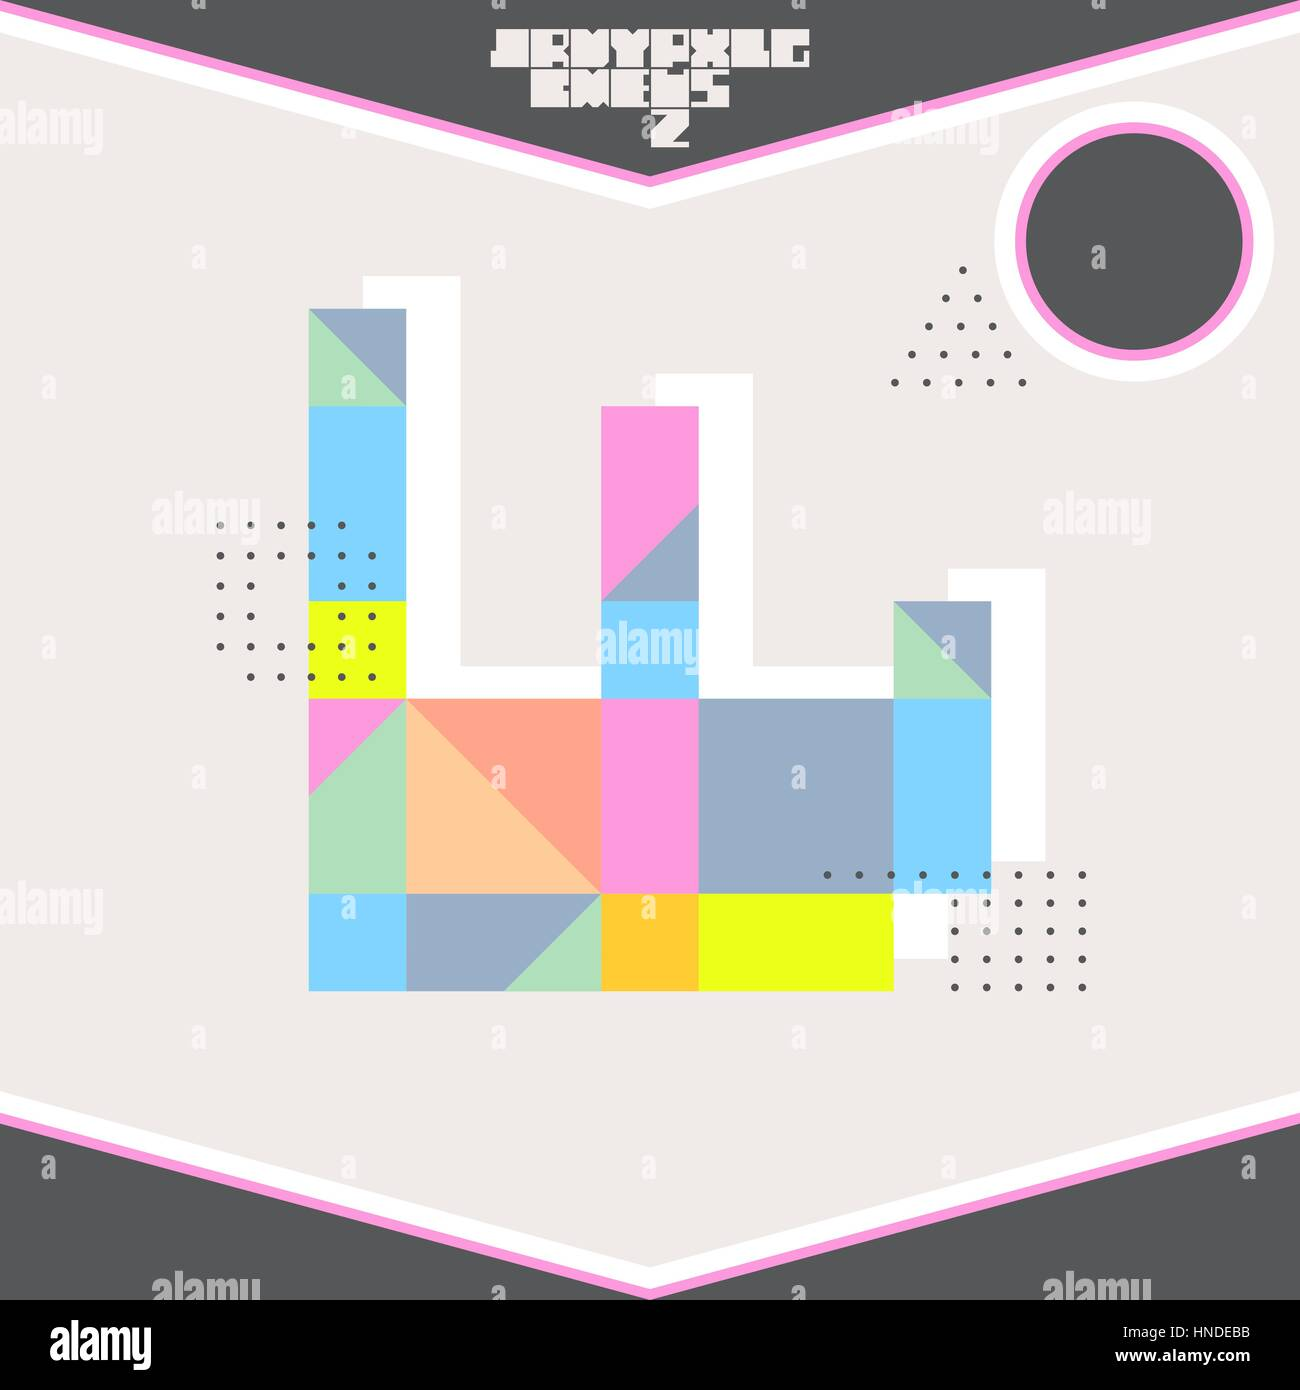 Elements of a poster design - Trendy Card Memphis Style Design Abstract Geometric Elements Layout Template Poster Card